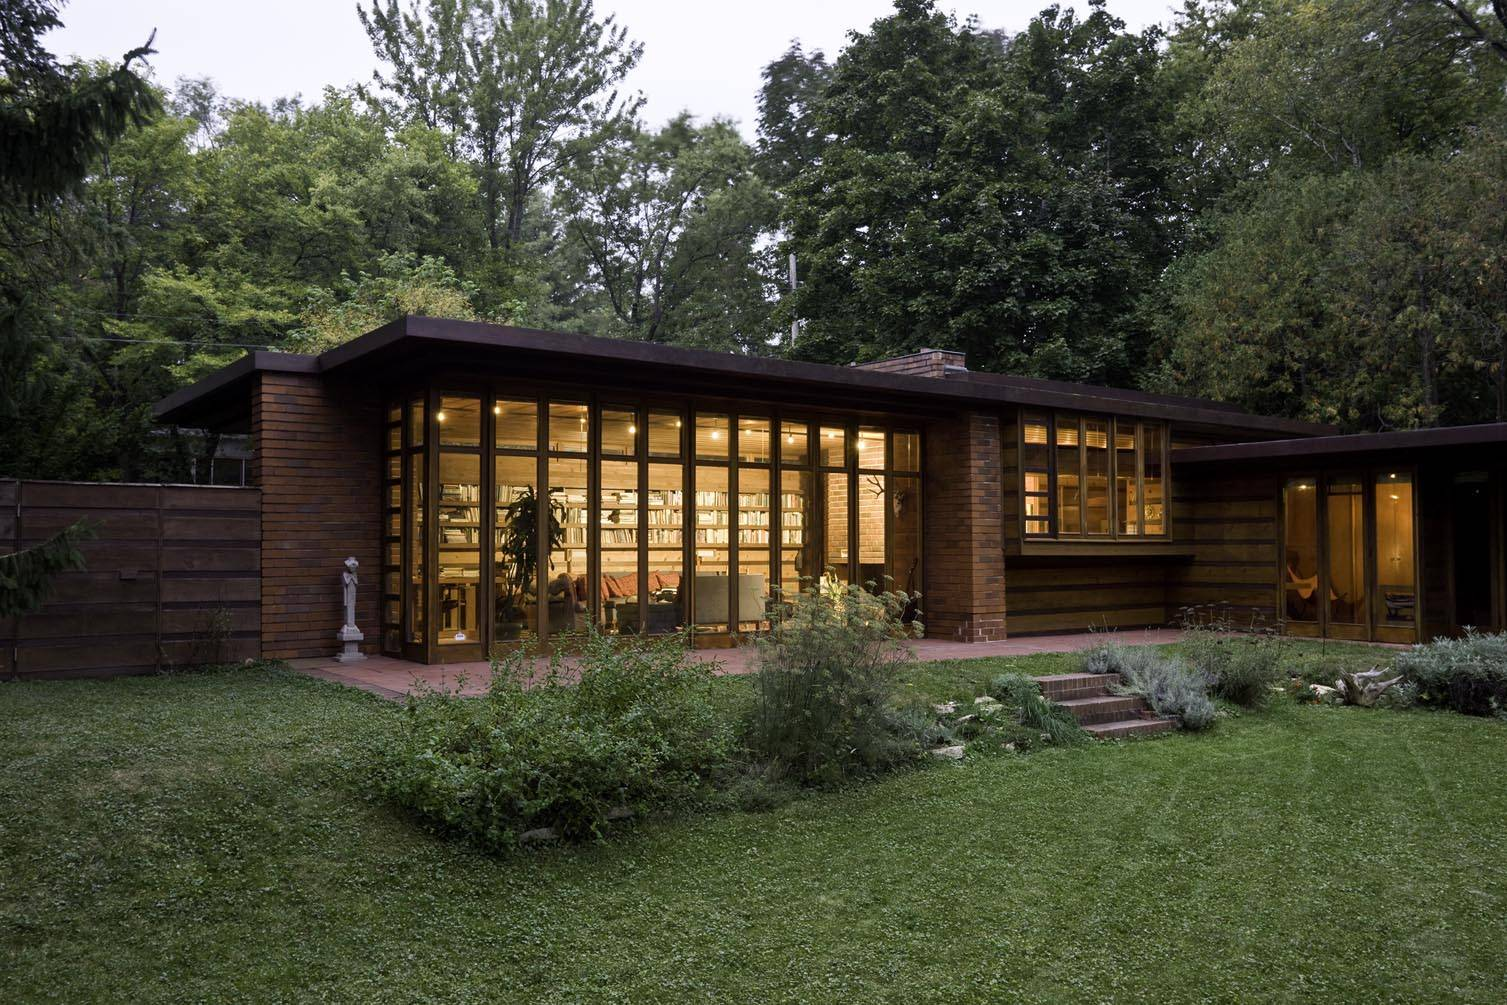 Instant house frank lloyd wright 39 s usonian homes for Frank lloyd wright stile prateria